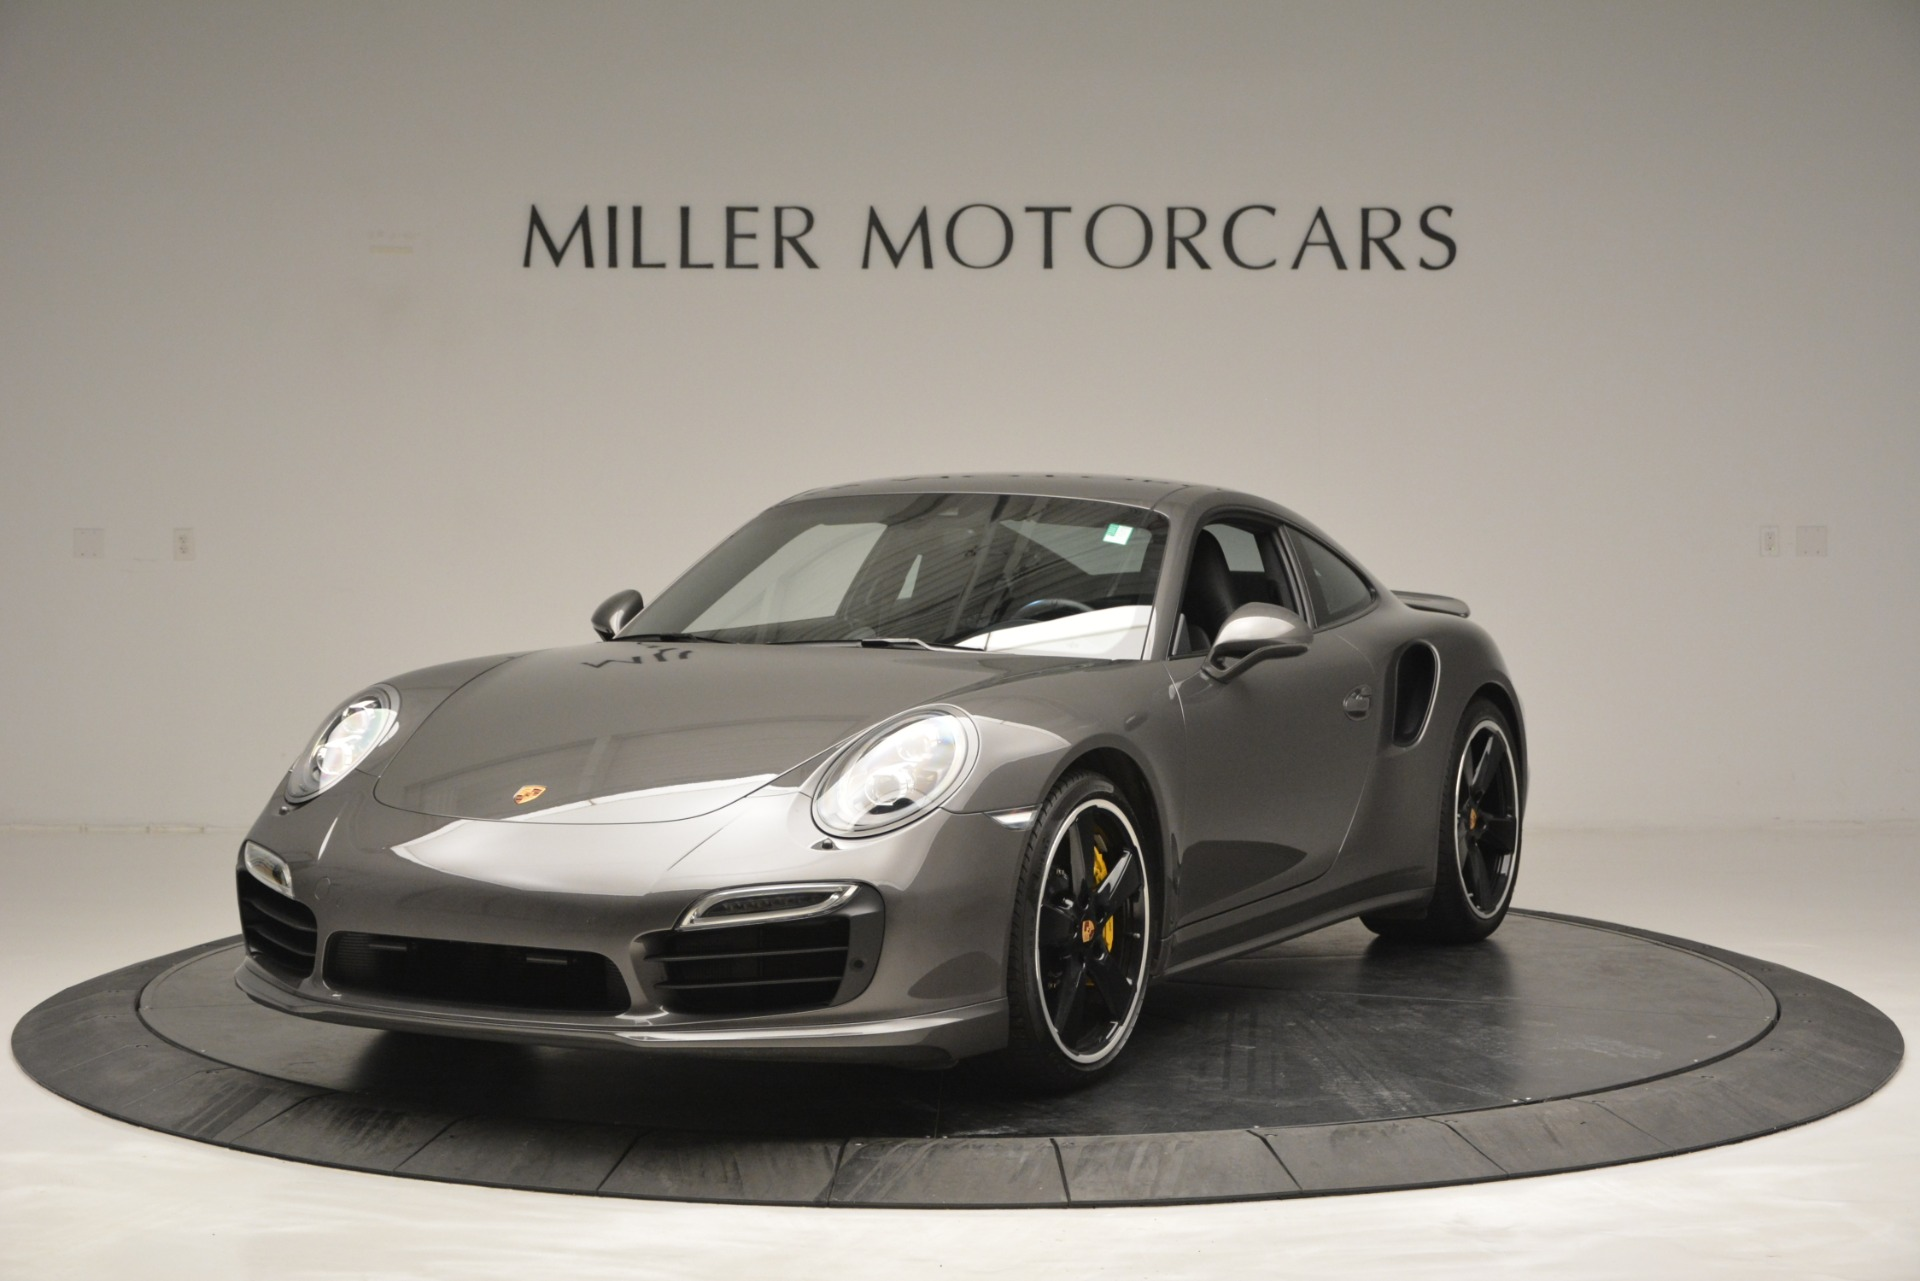 Used 2015 Porsche 911 Turbo S for sale Sold at Bentley Greenwich in Greenwich CT 06830 1